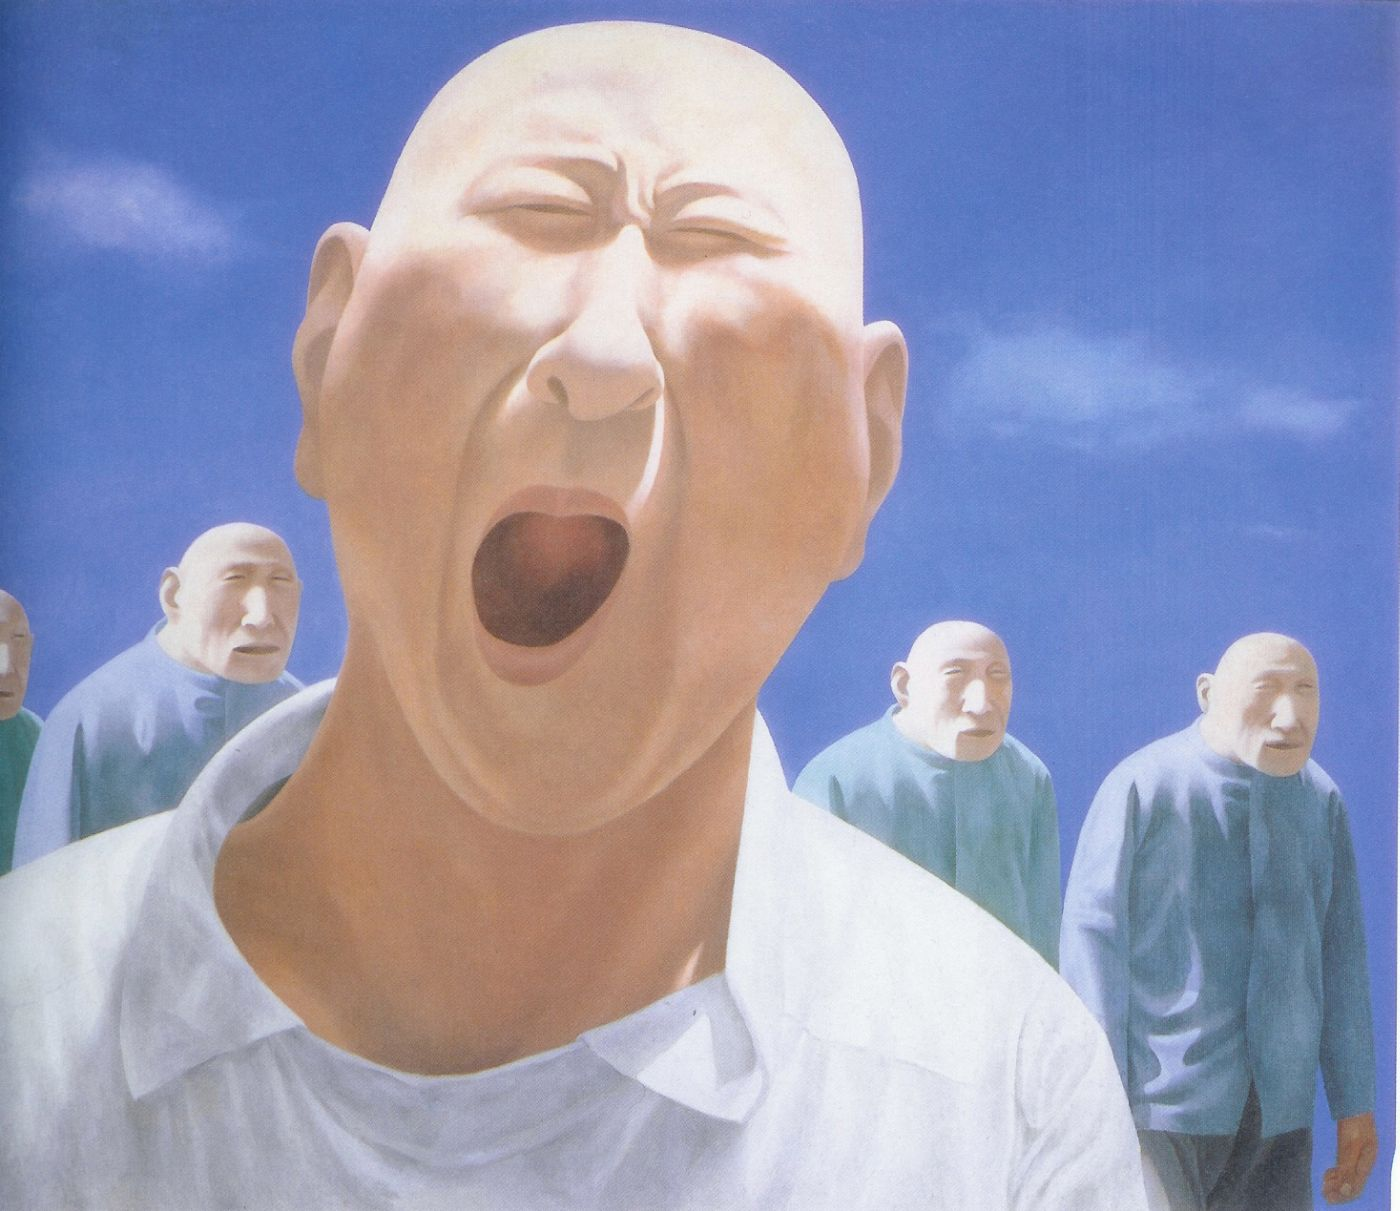 Foto 1. FANG LIJUN, Series2, no. 2, 1991 - 1992, oil on canvas, 200.jpg